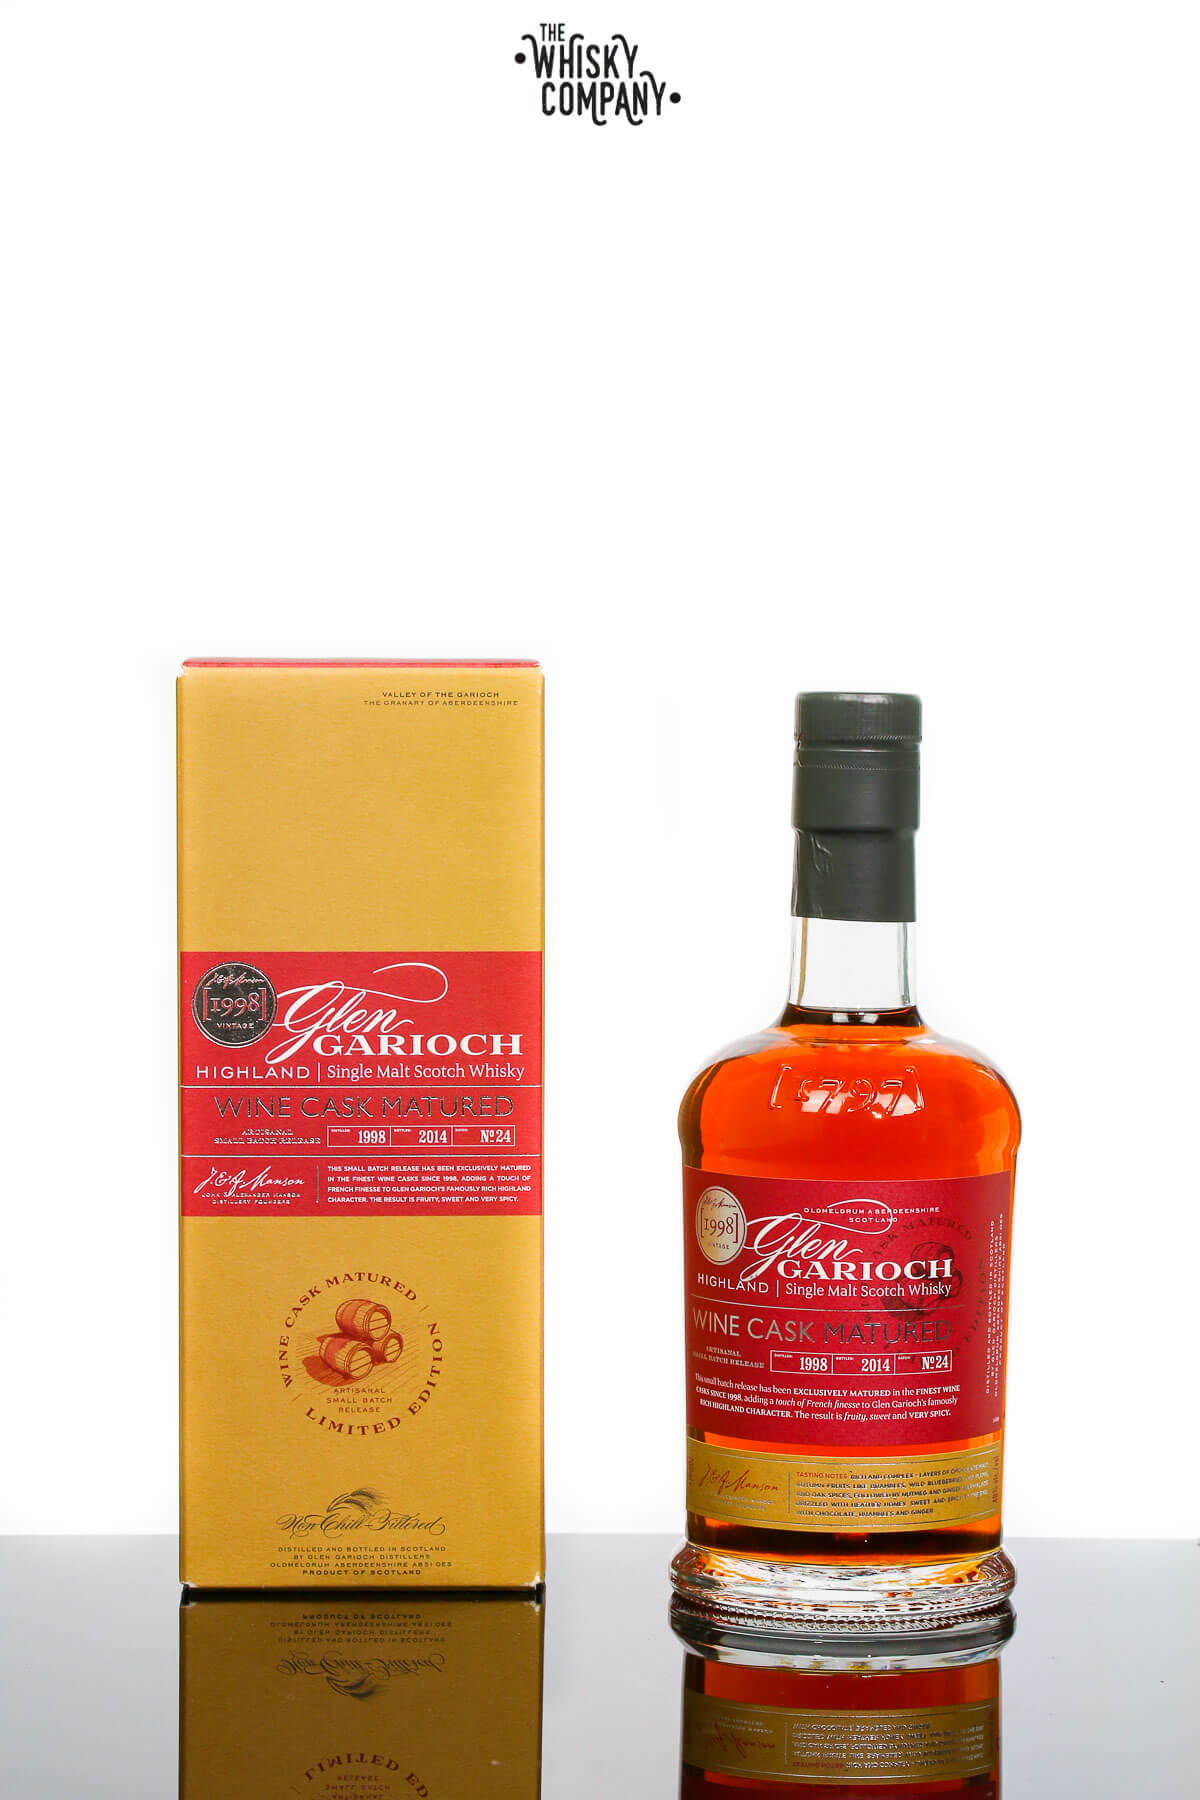 Glen Garioch 1998 Wine Cask Matured Single Malt Scotch Whisky